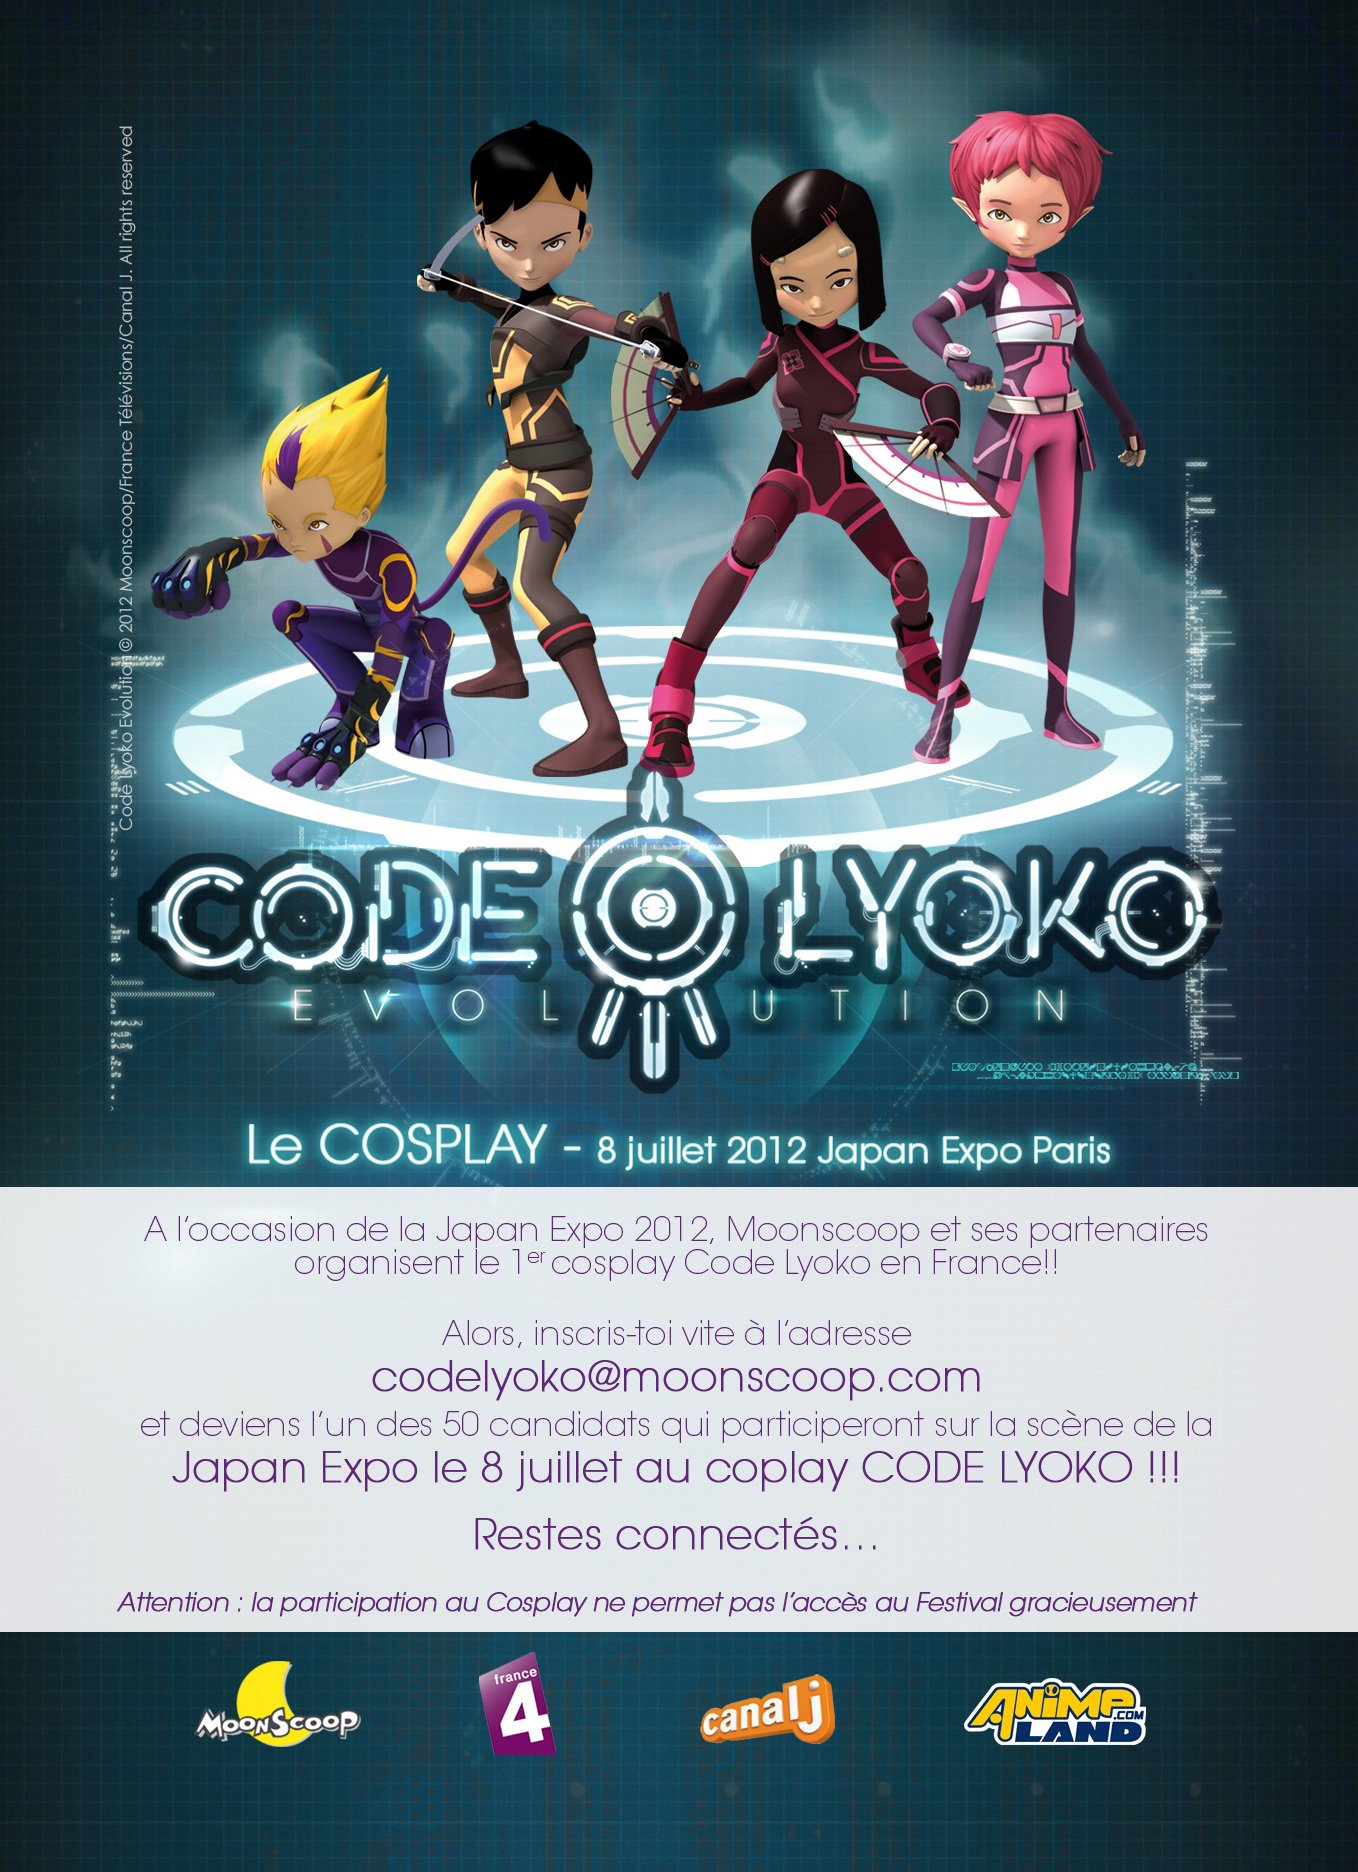 http://www.tumblr.com/tagged/code-lyoko-evolution